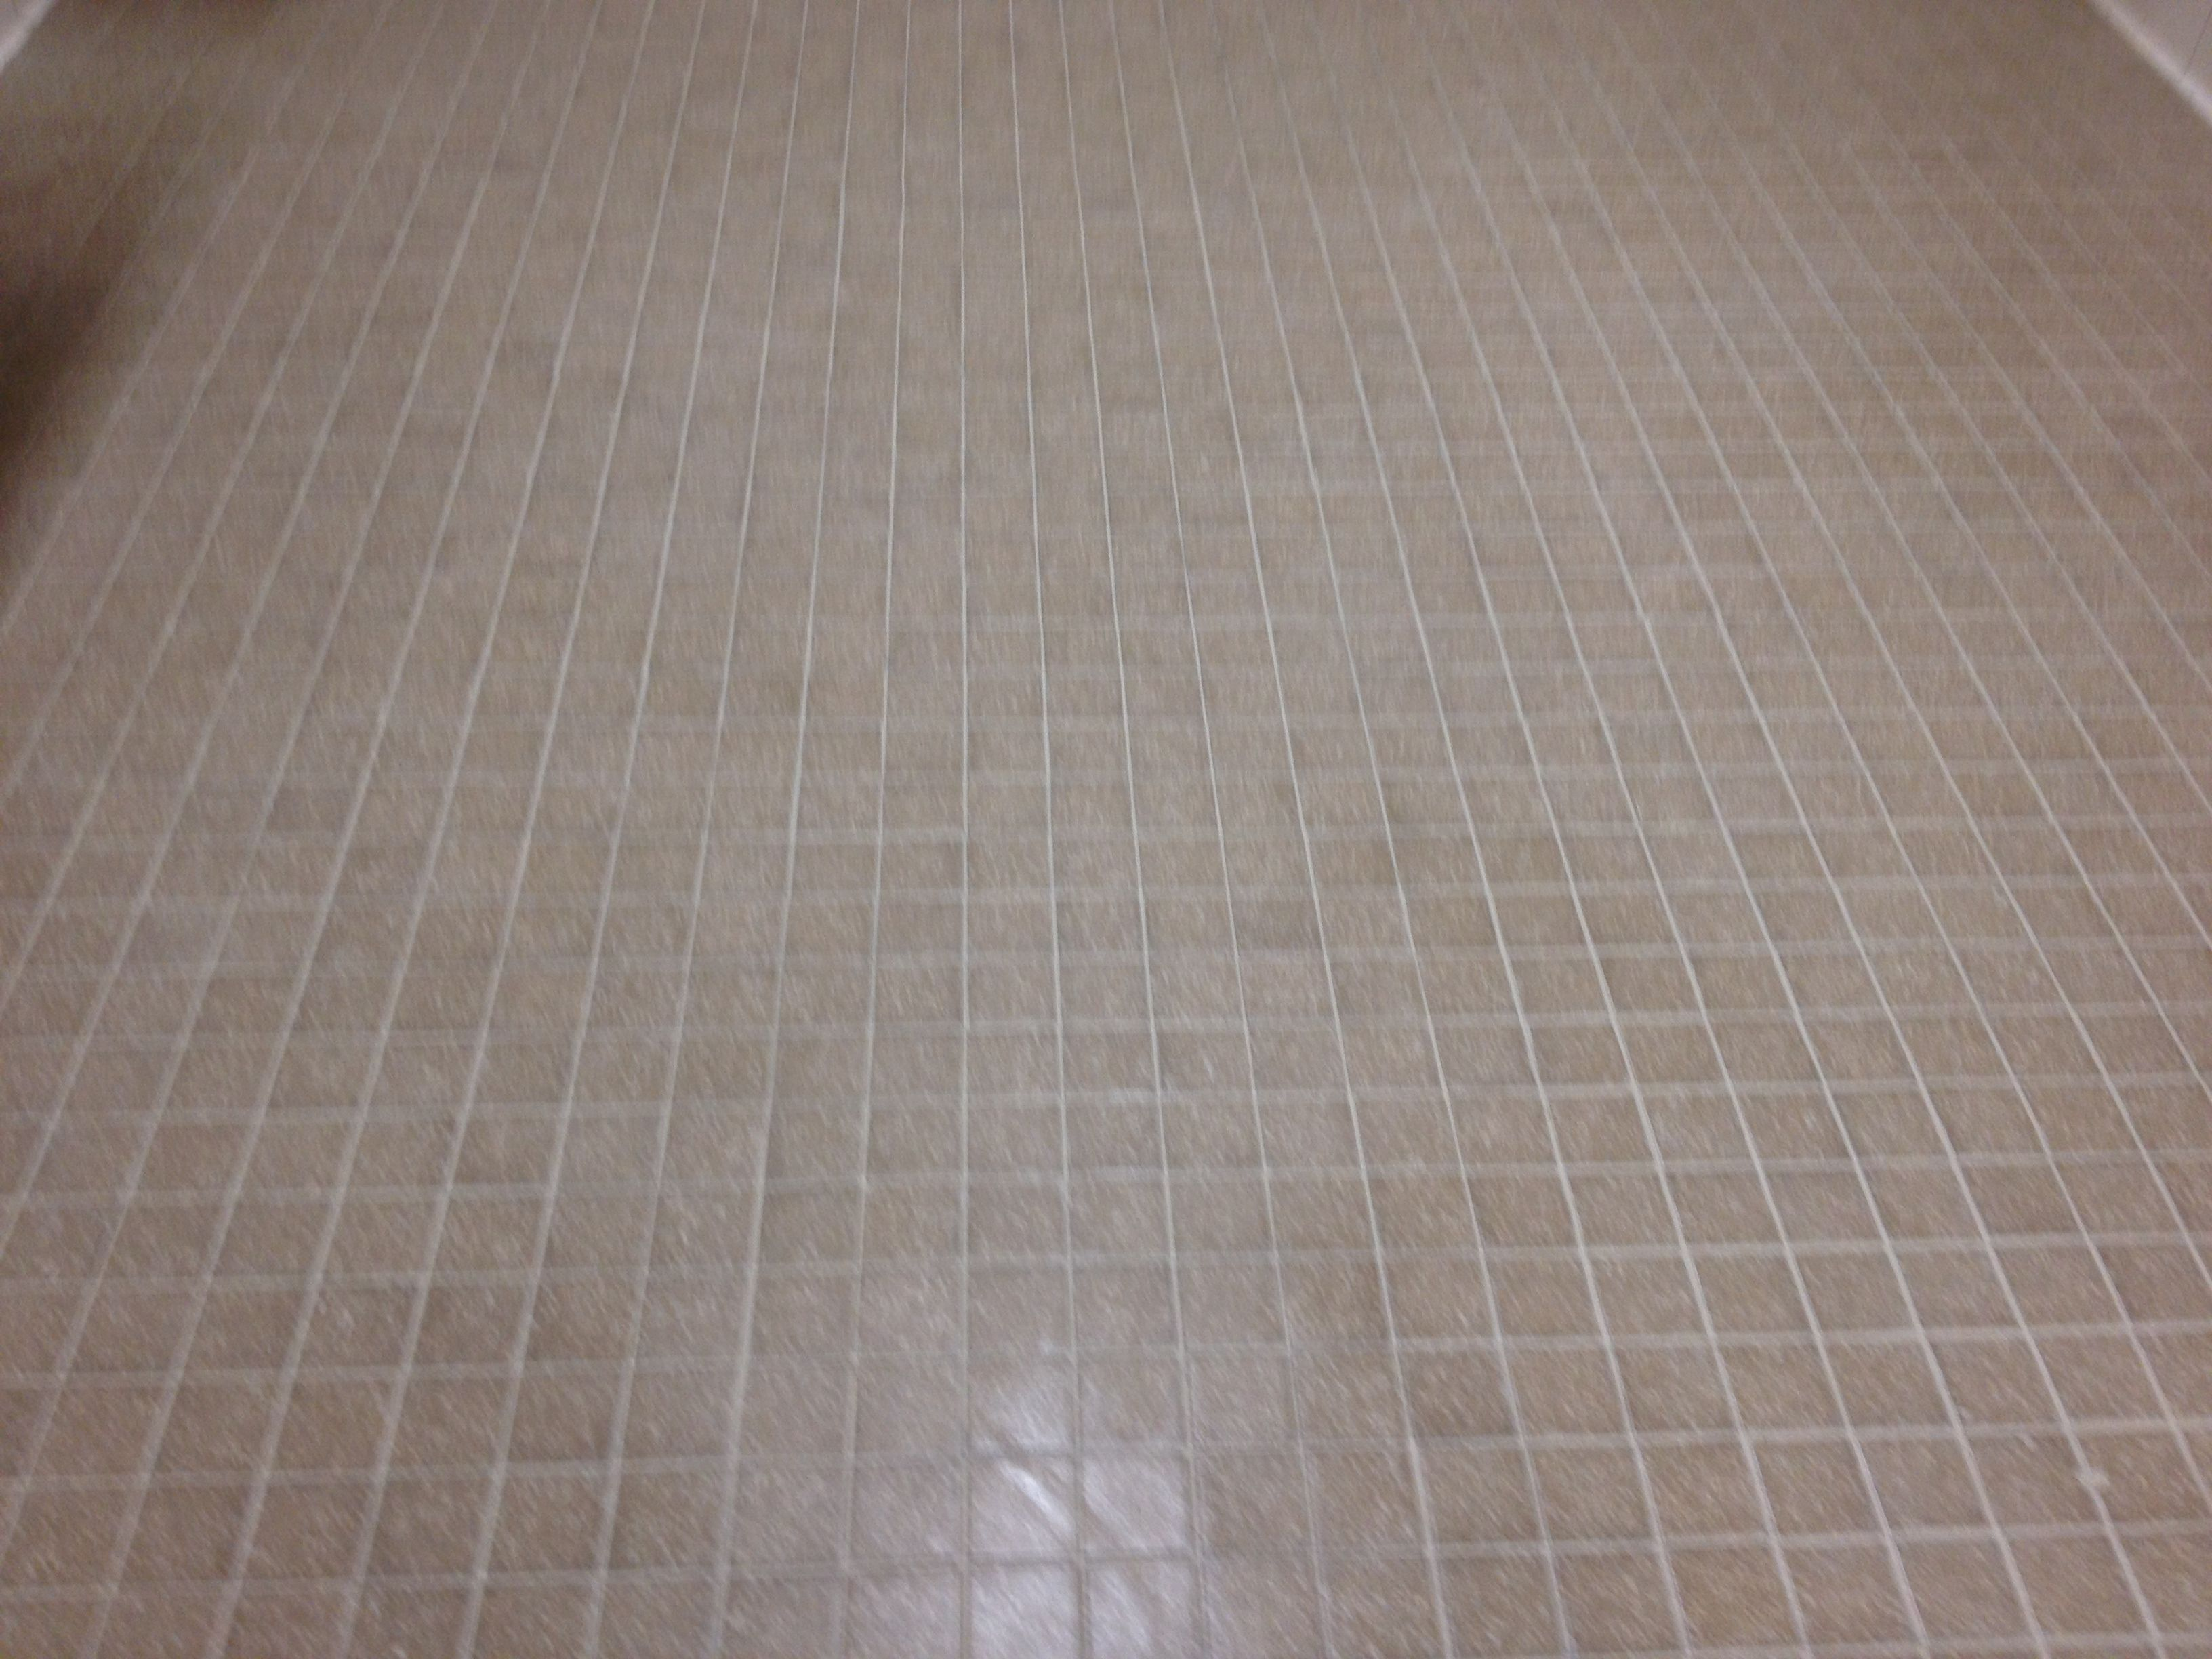 After cleaning, re-coloring grout, clear coating application | Tile ...